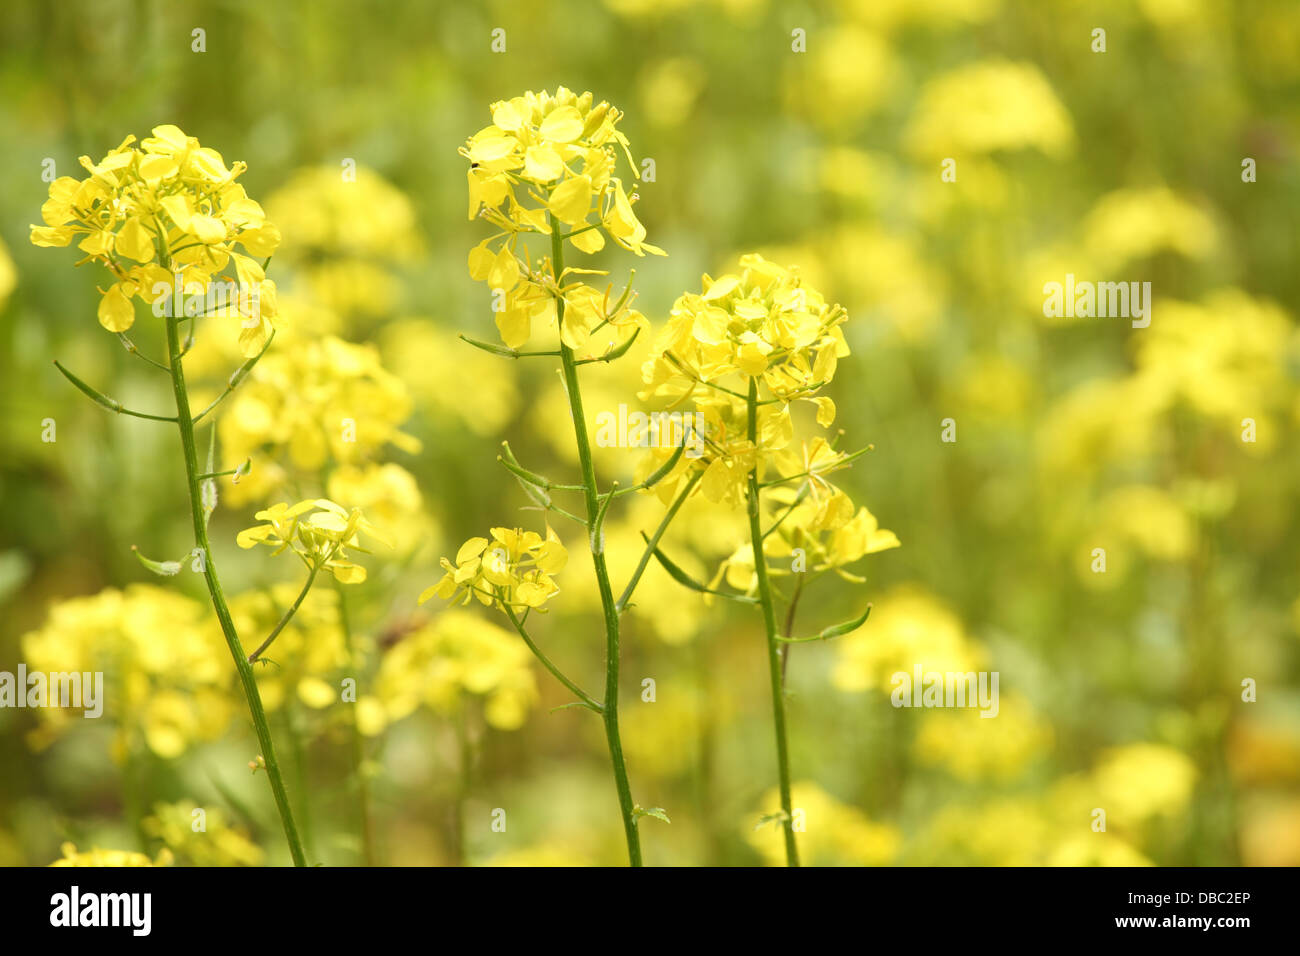 The blooming yellow flowers of white mustard plants sinapis alba the blooming yellow flowers of white mustard plants sinapis alba location male karpaty slovakia mightylinksfo